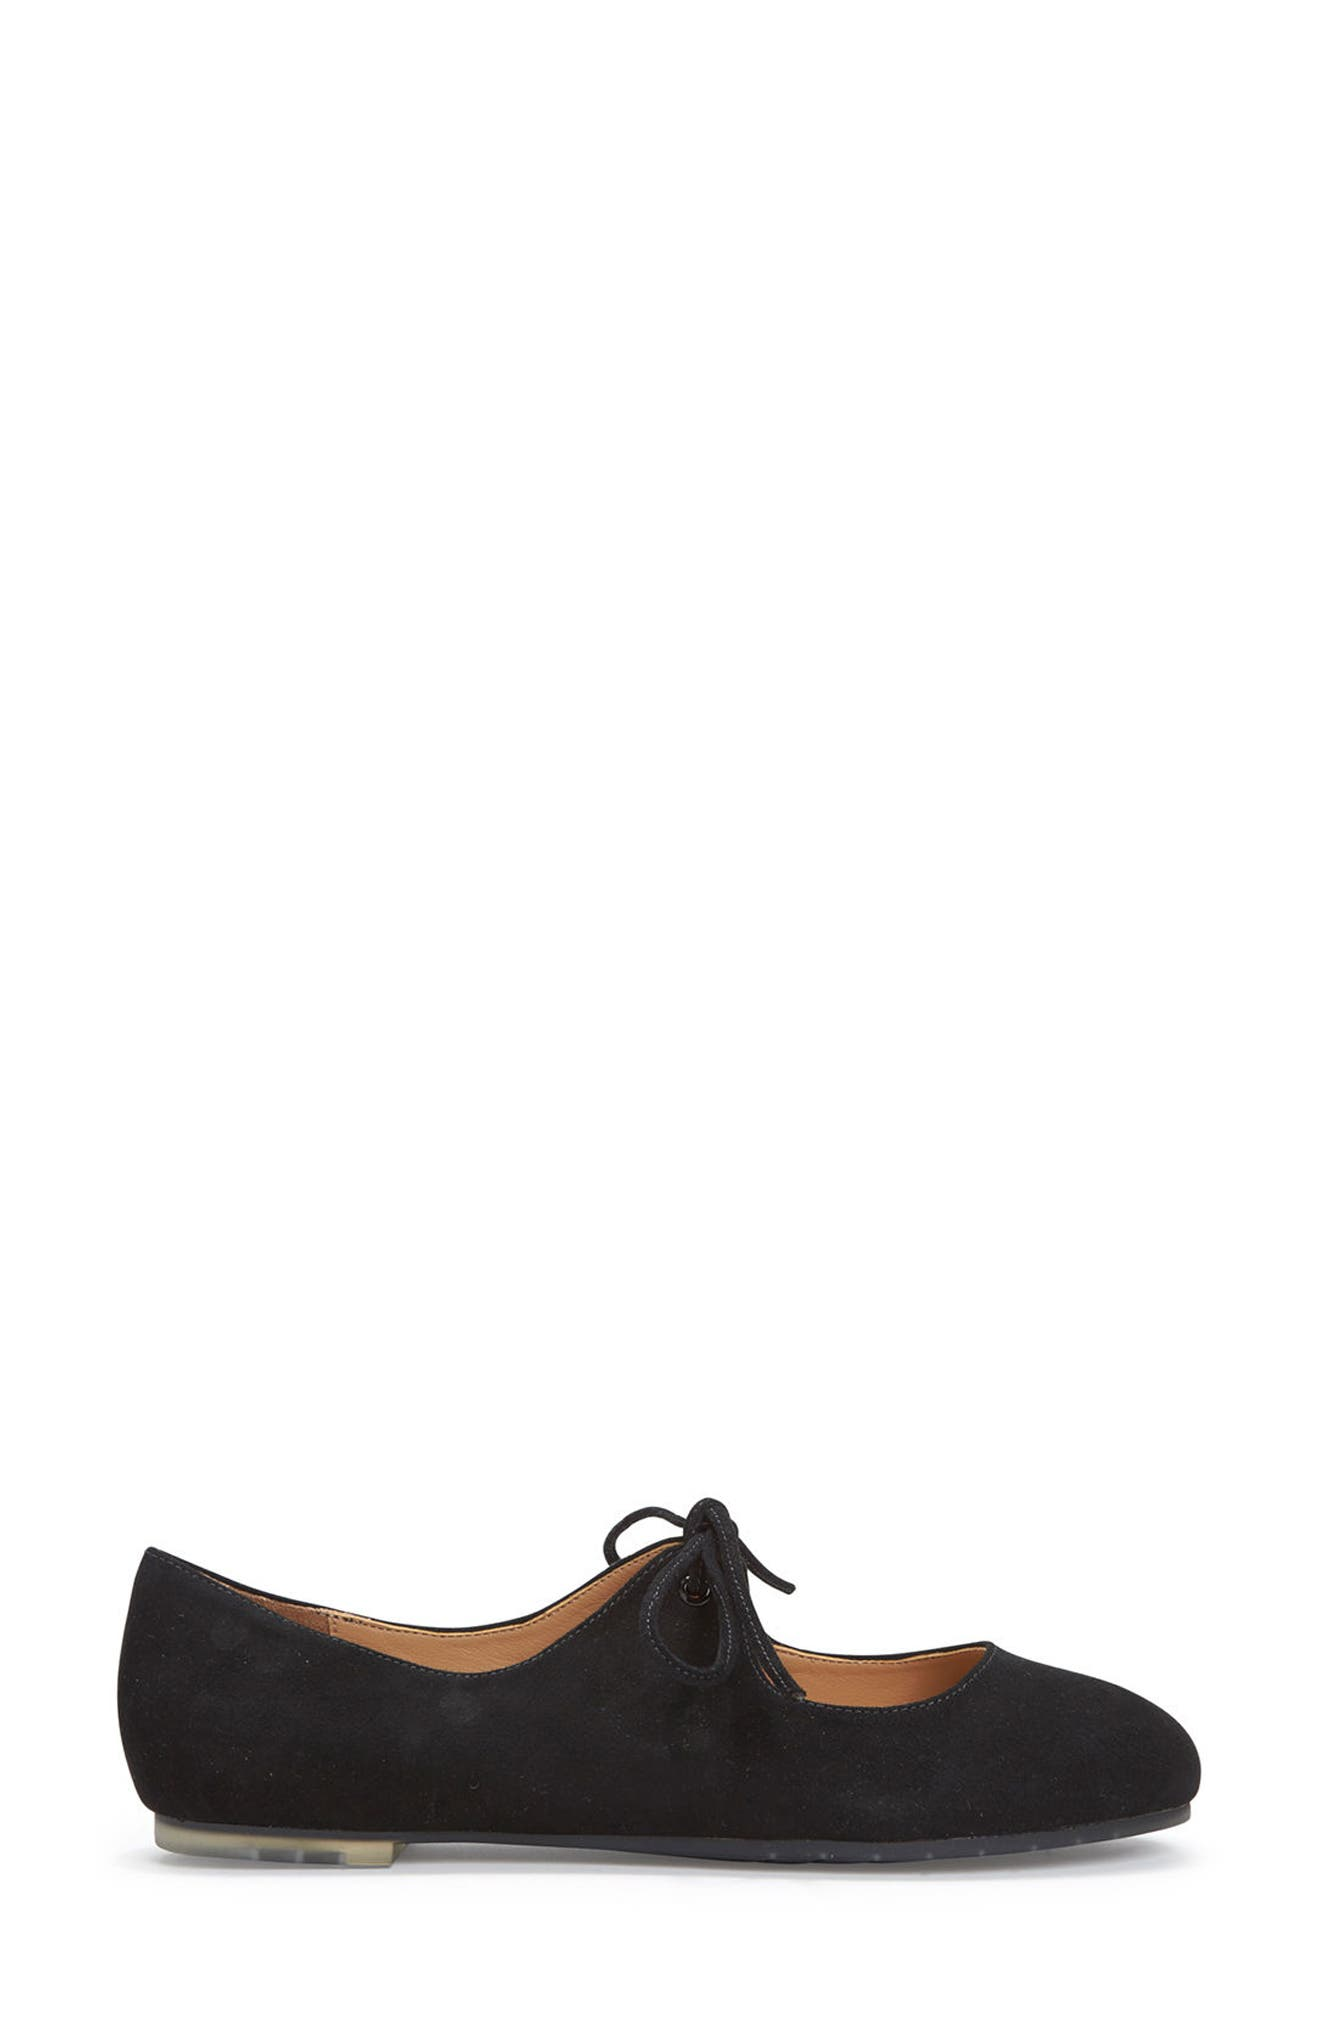 Cacey Mary Jane Flat,                             Alternate thumbnail 3, color,                             Black Suede